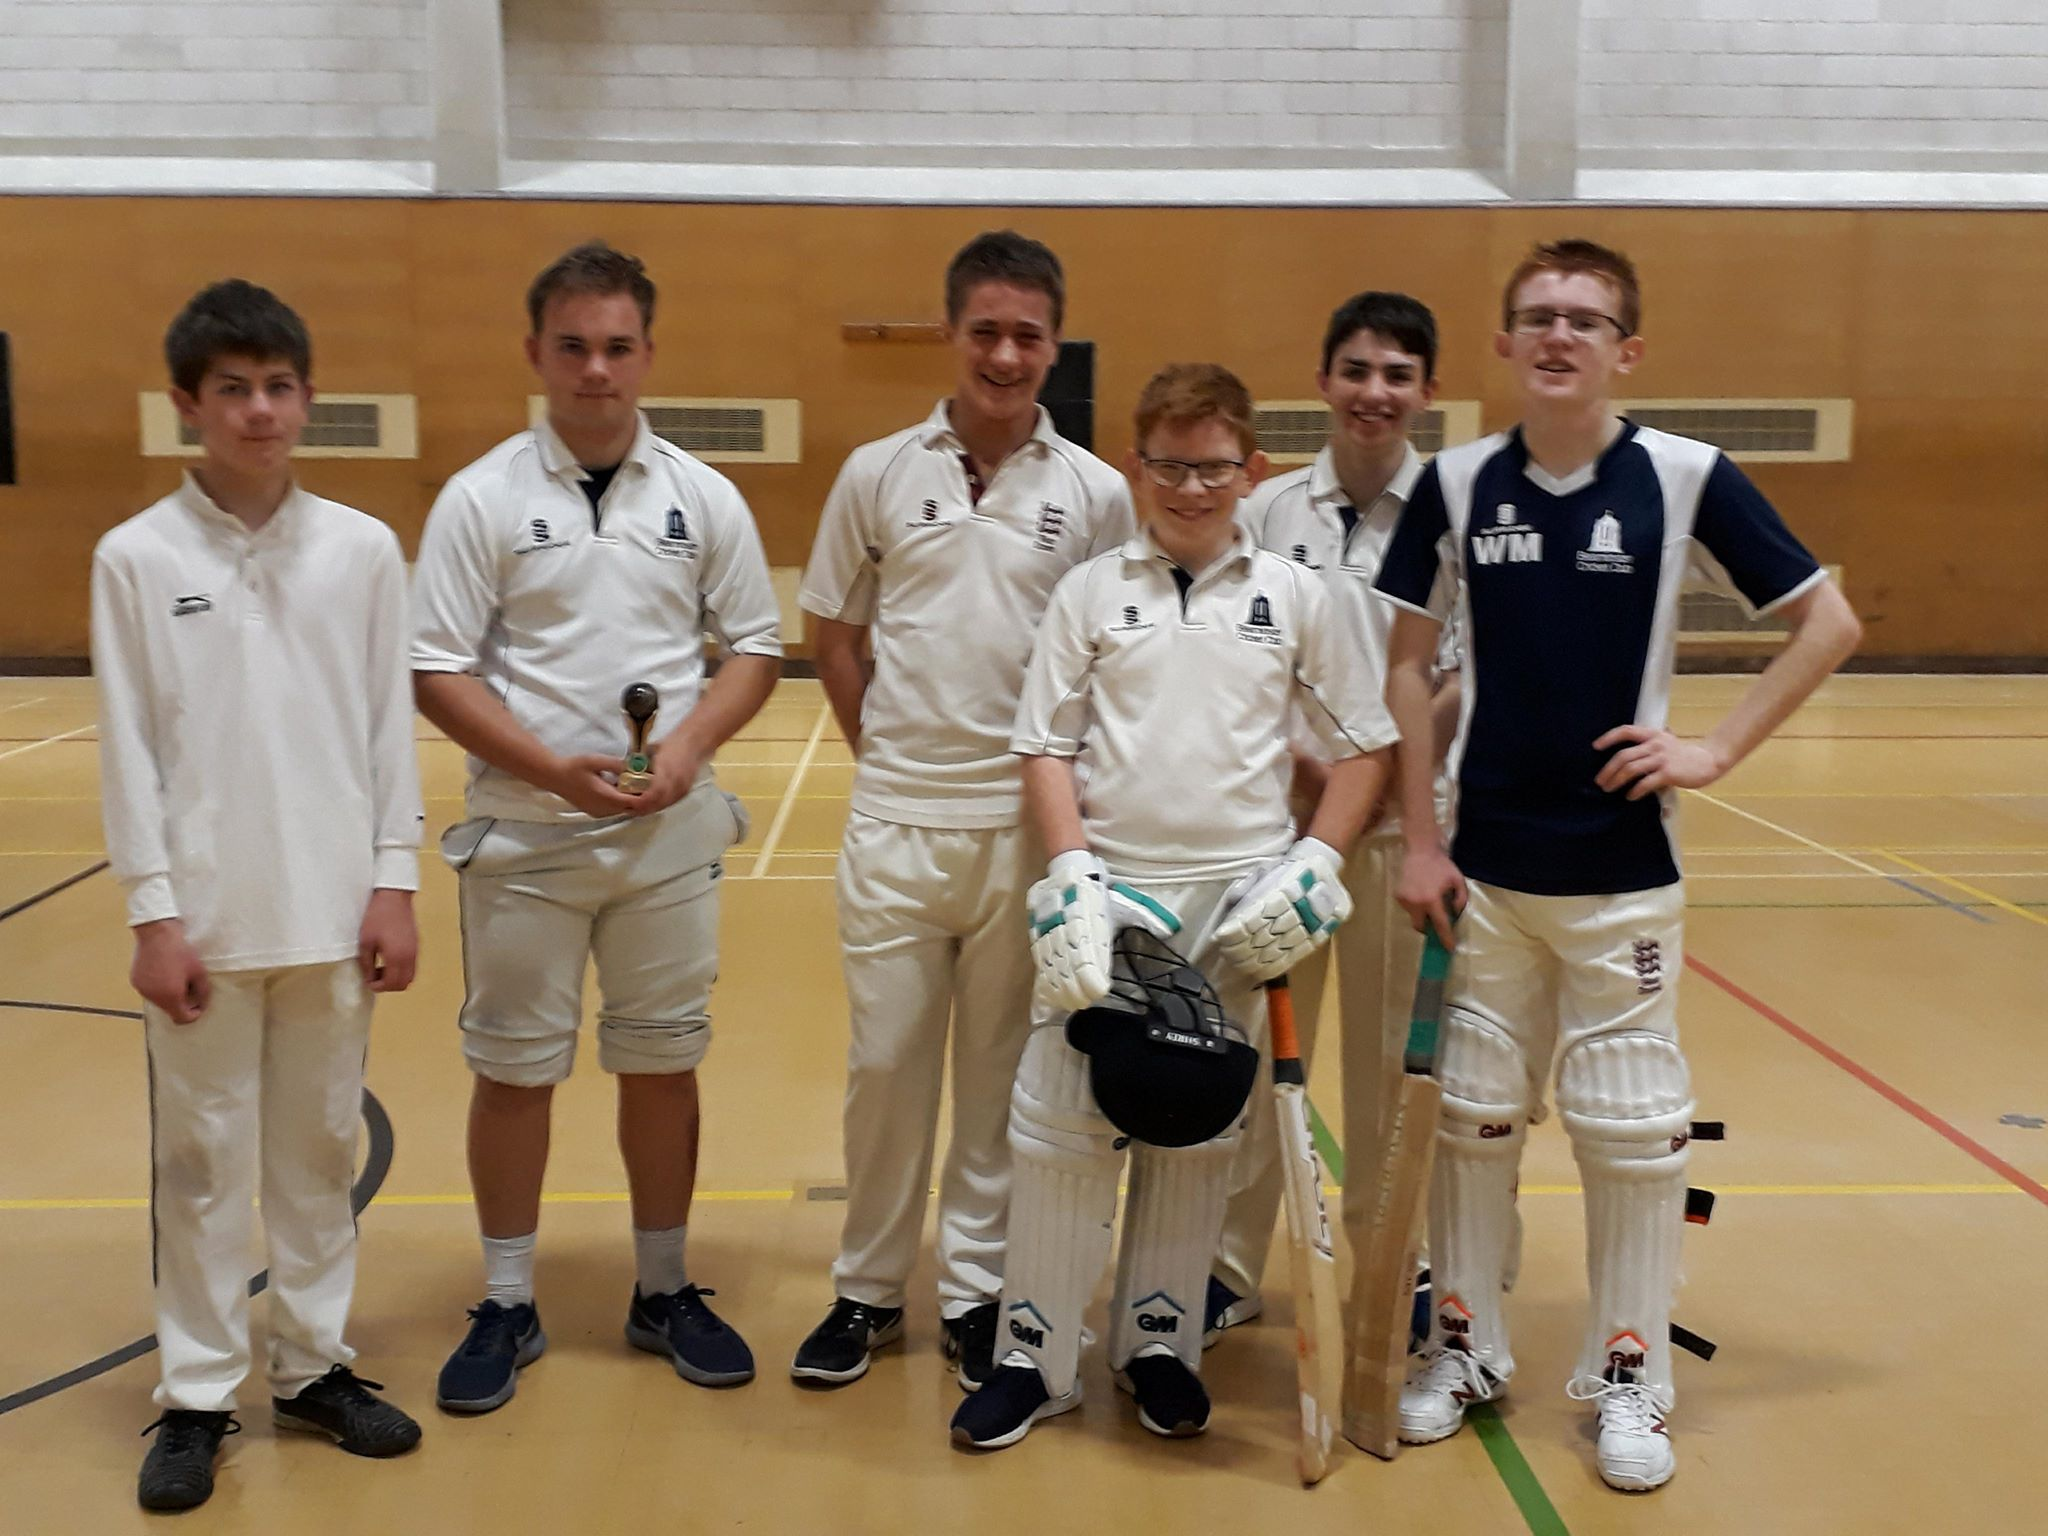 U16s players at the indoor final- 21/04/18